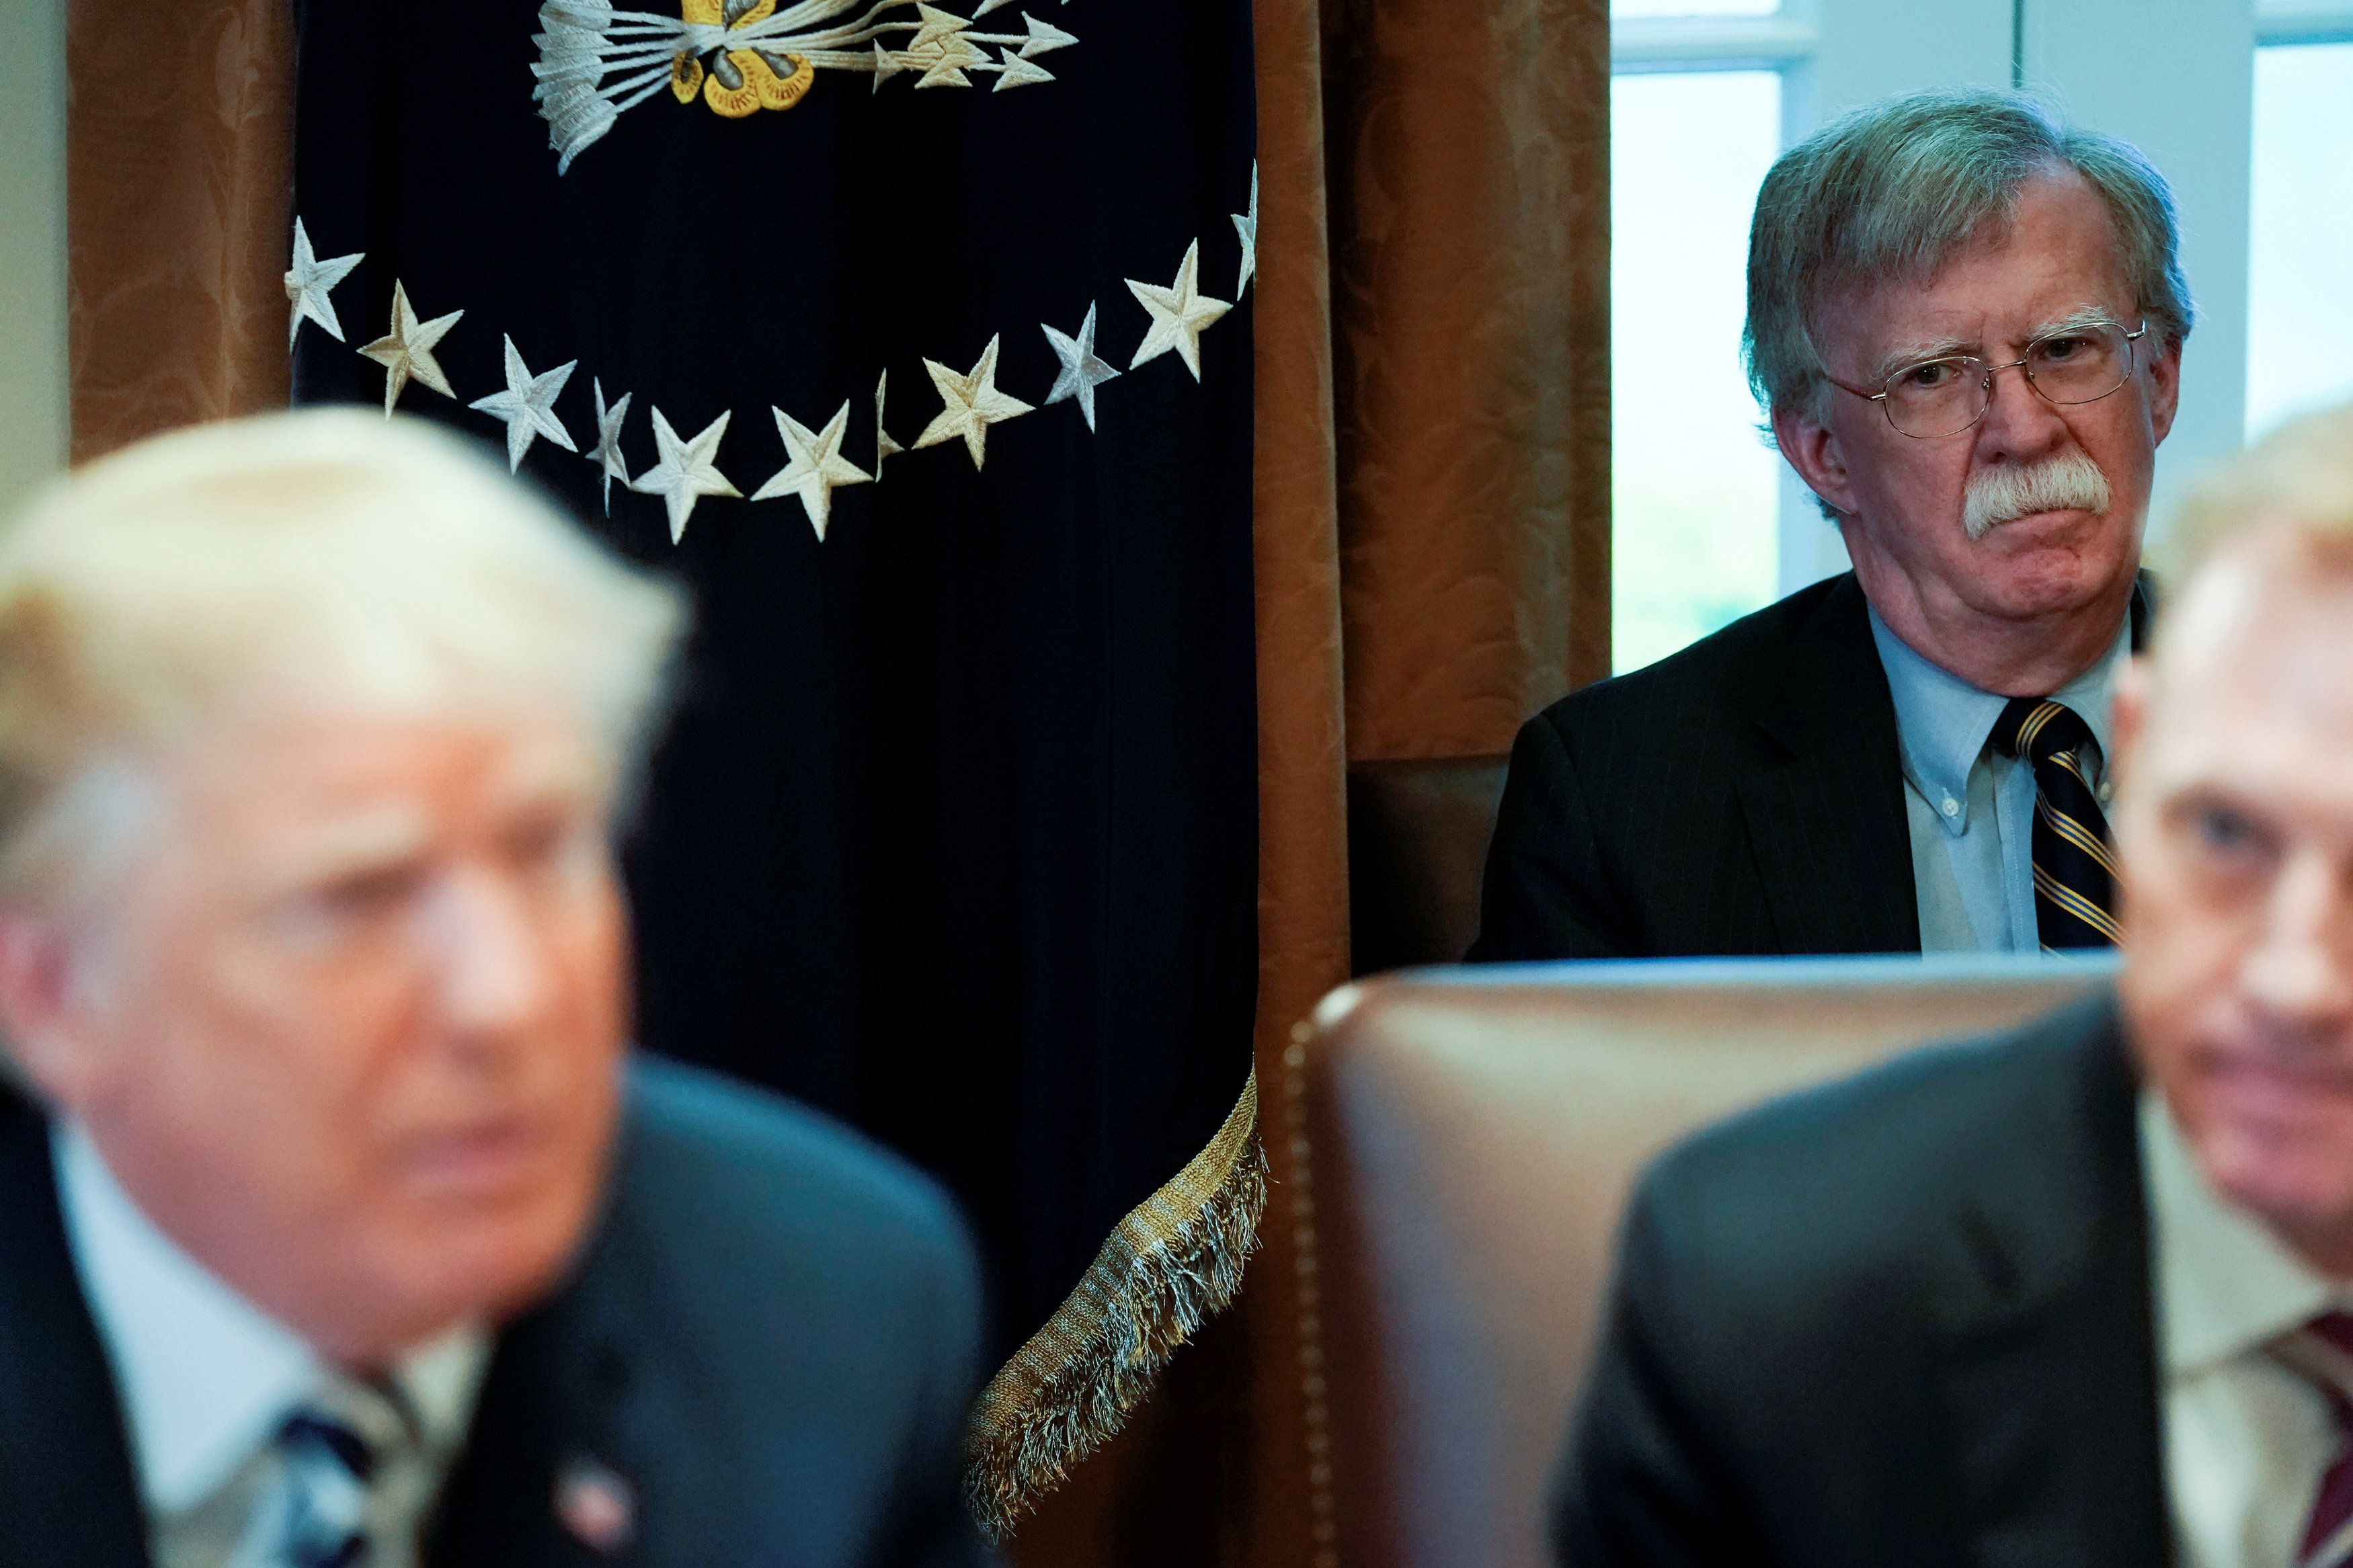 White House National Security Advisor John Bolton looks on as U.S. President Donald Trump holds a cabinet meeting at the White House in Washington, U.S. May 9, 2018.  REUTERS/Jonathan Ernst